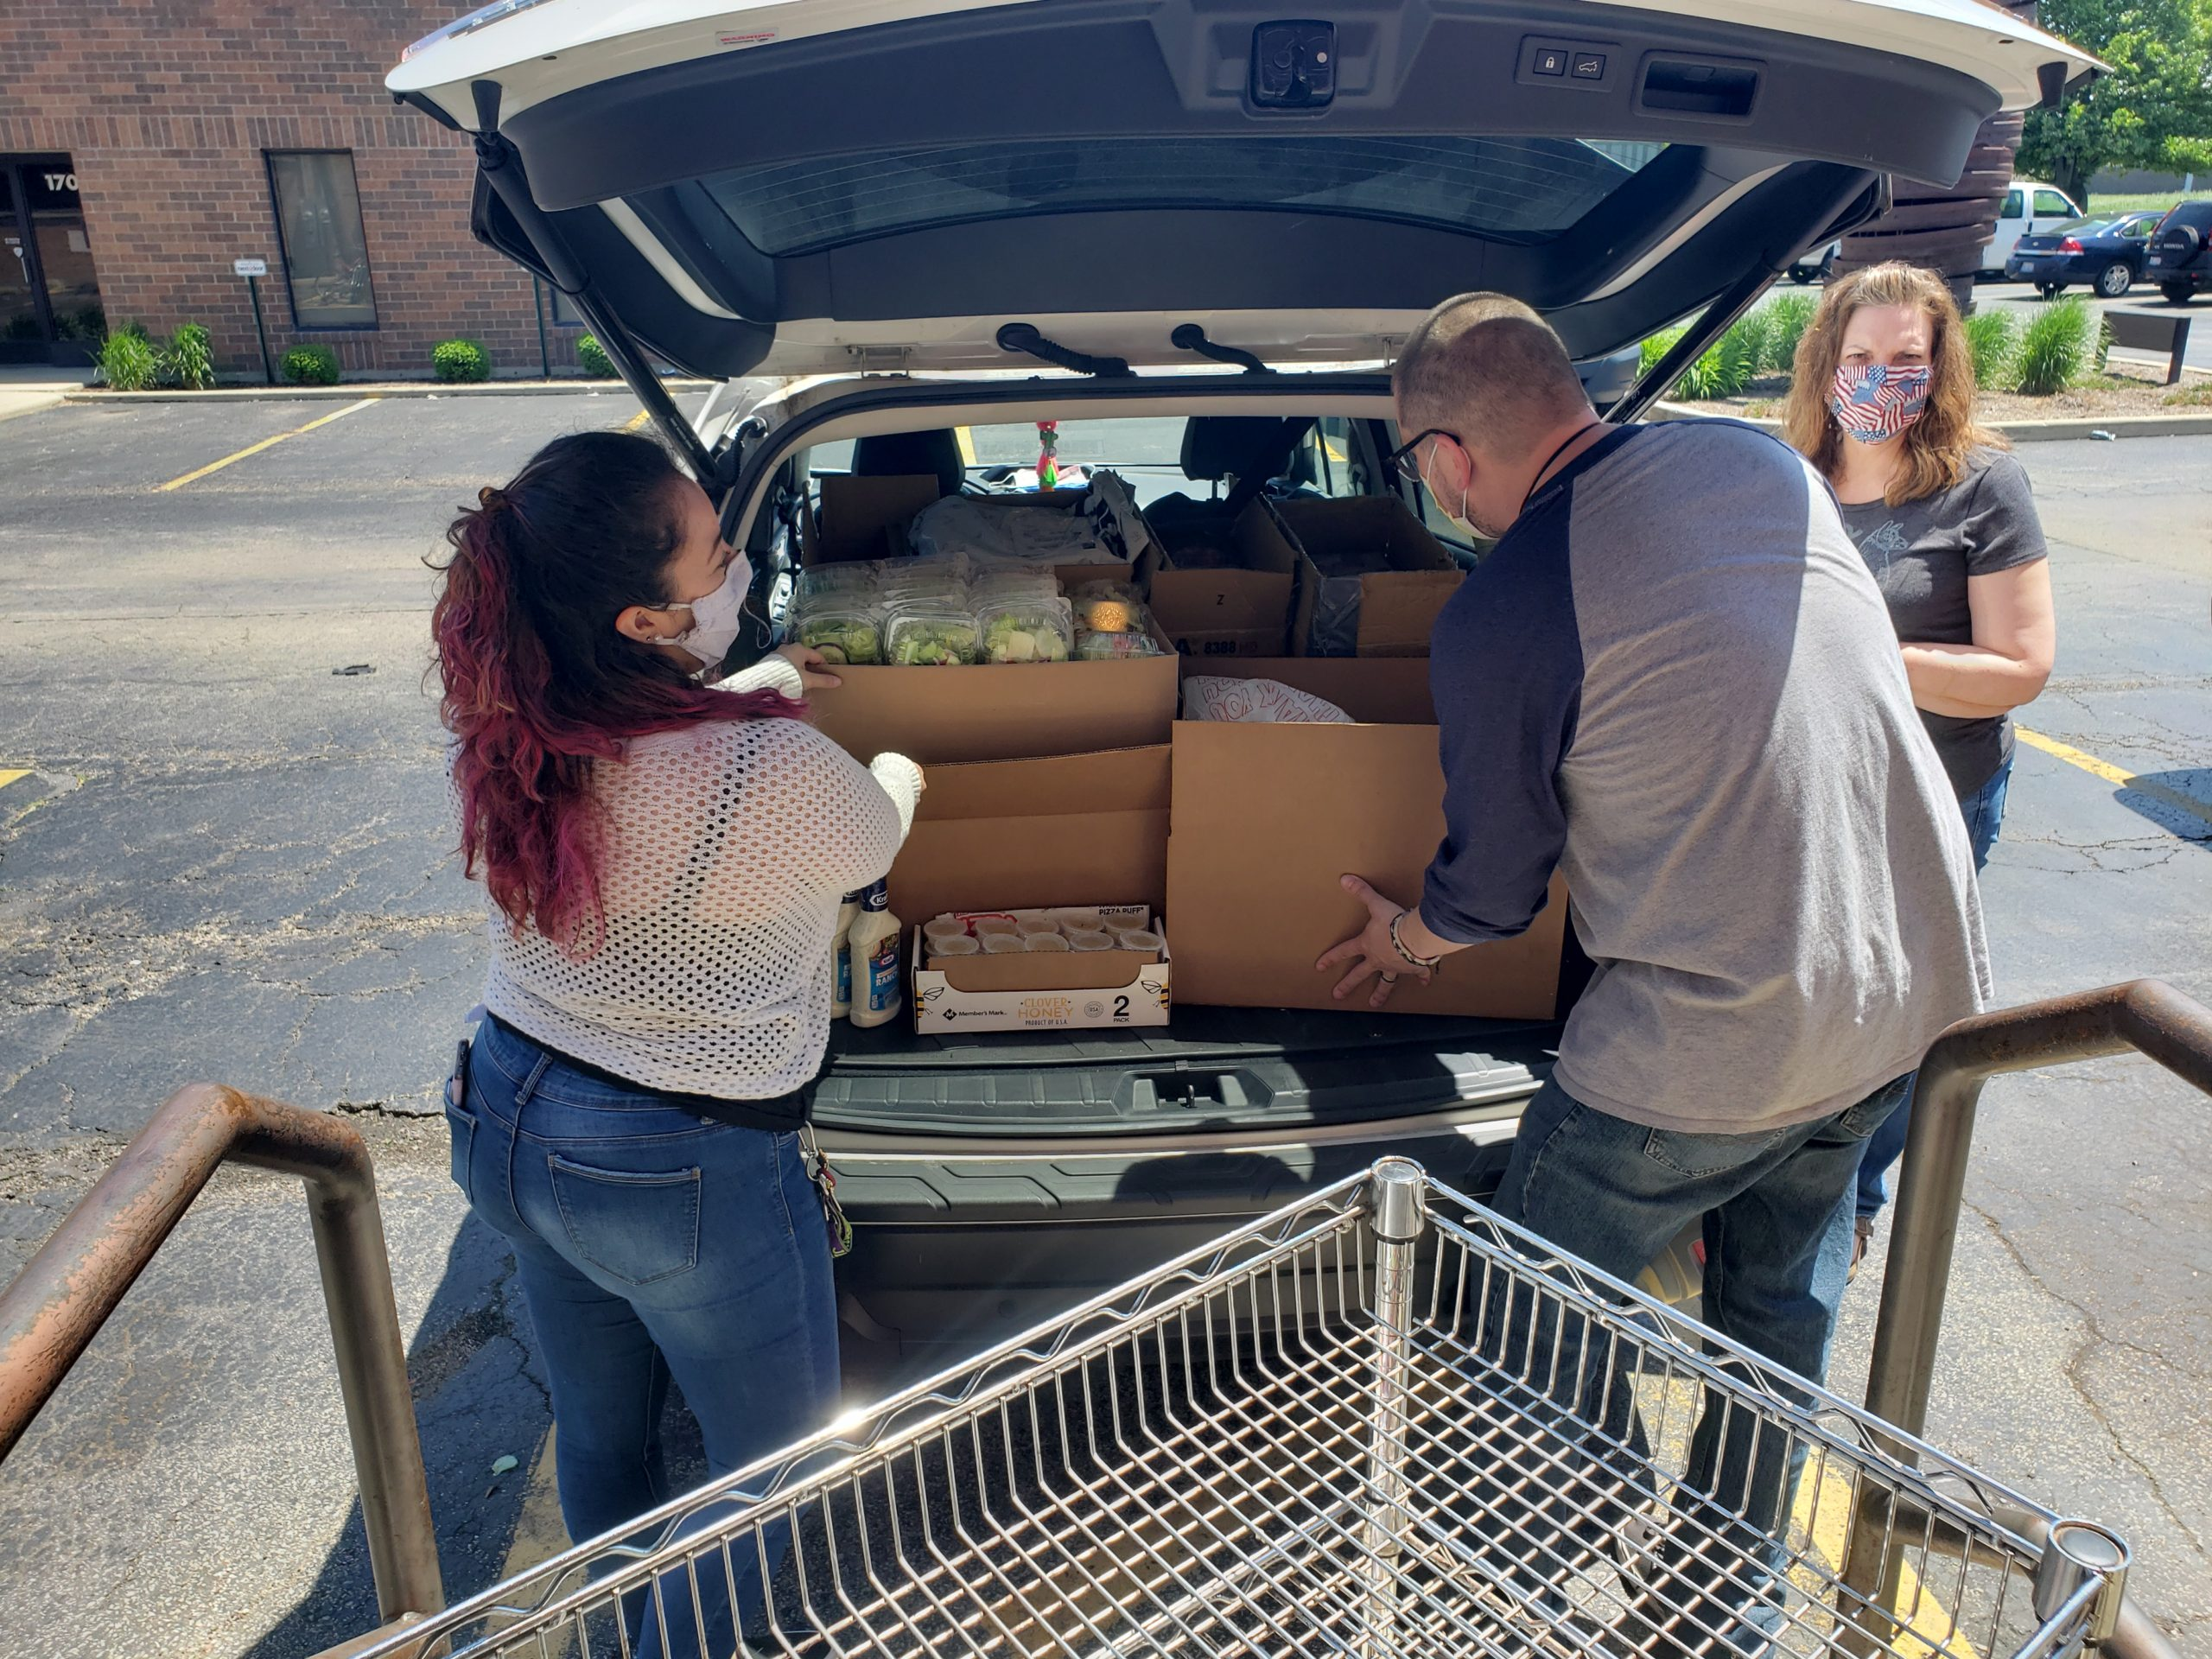 Volunteers loading truck of car with groceries